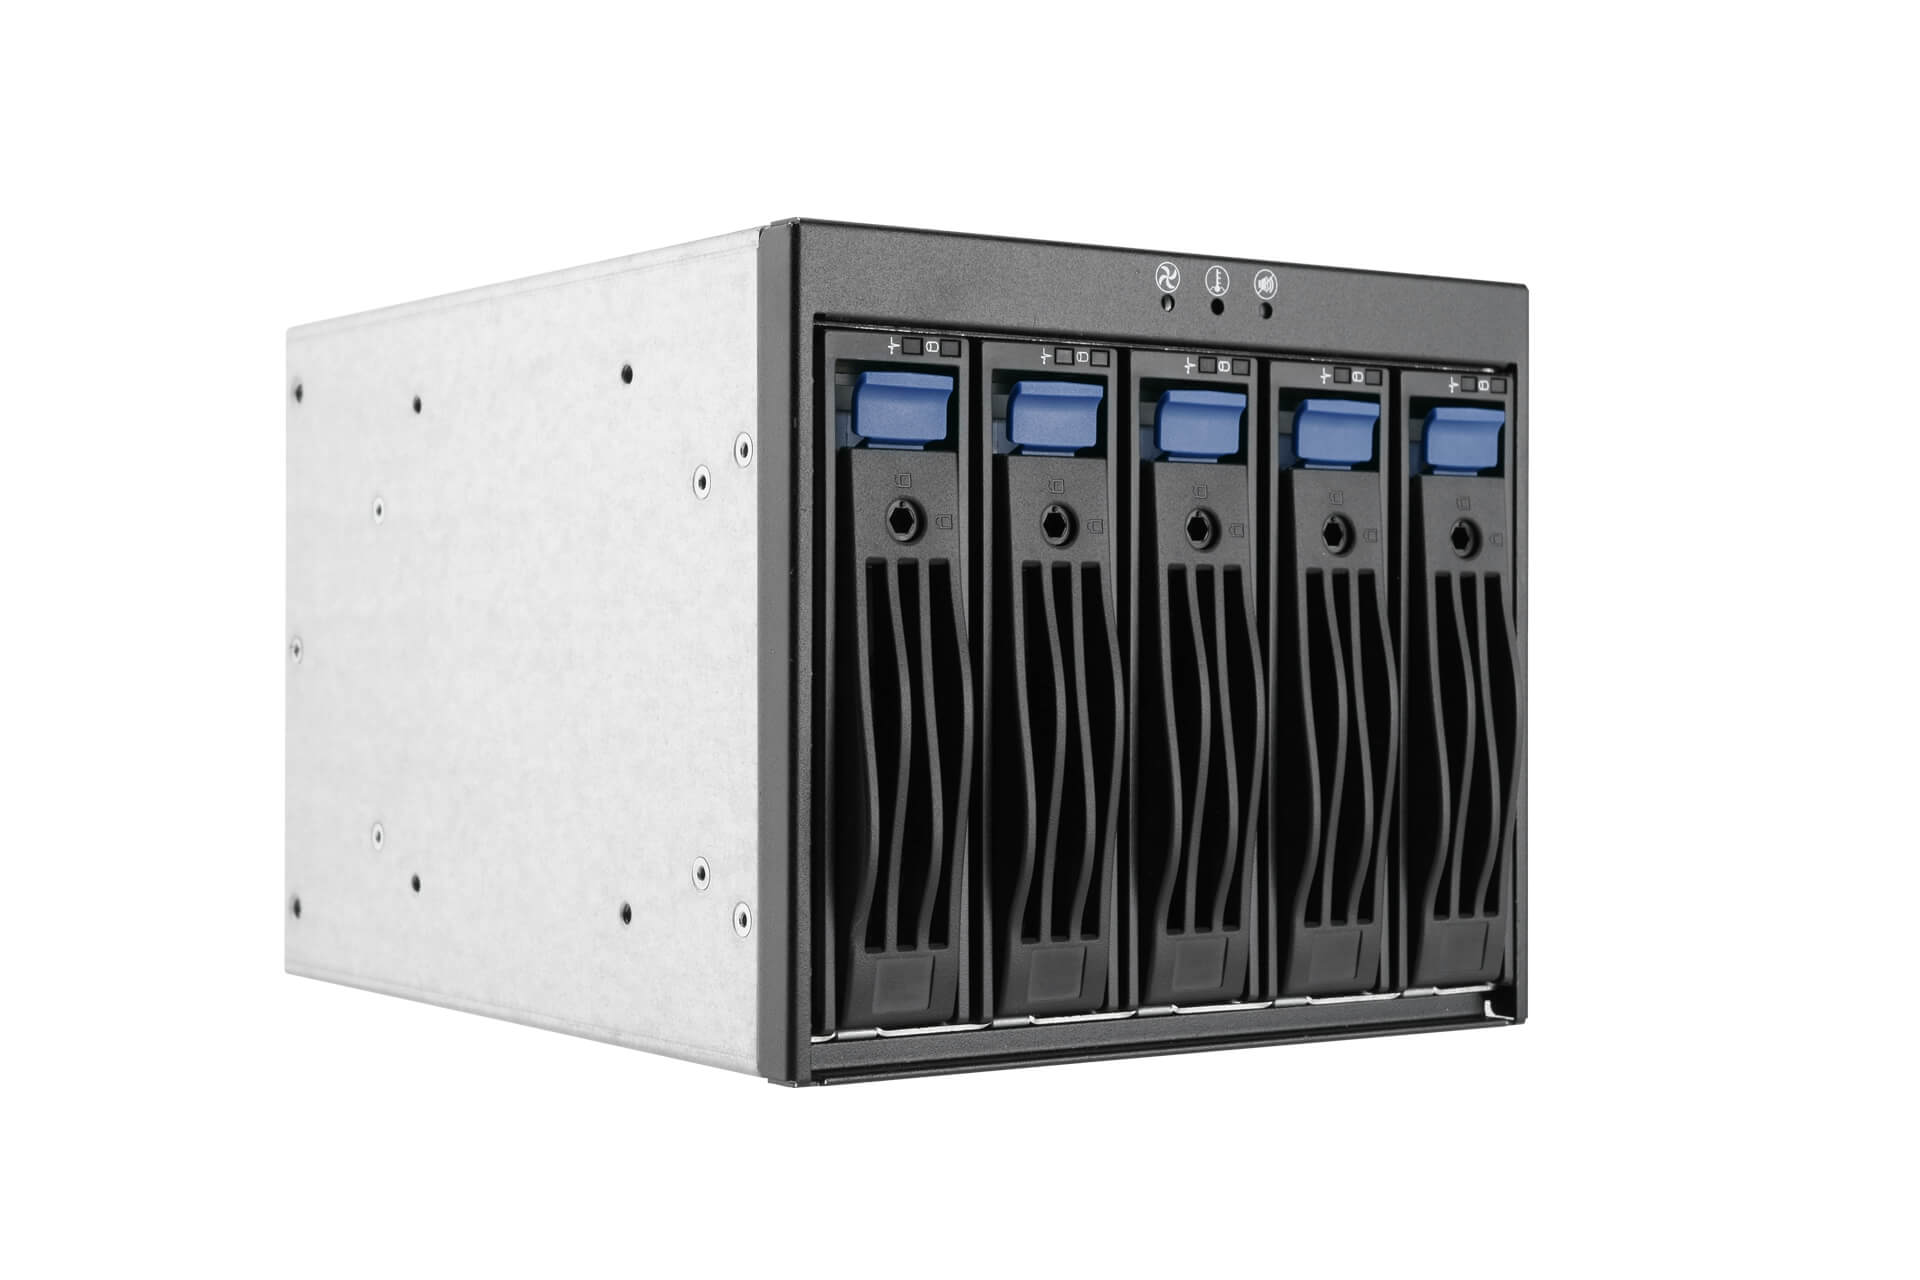 Storage Kit - server system assembly